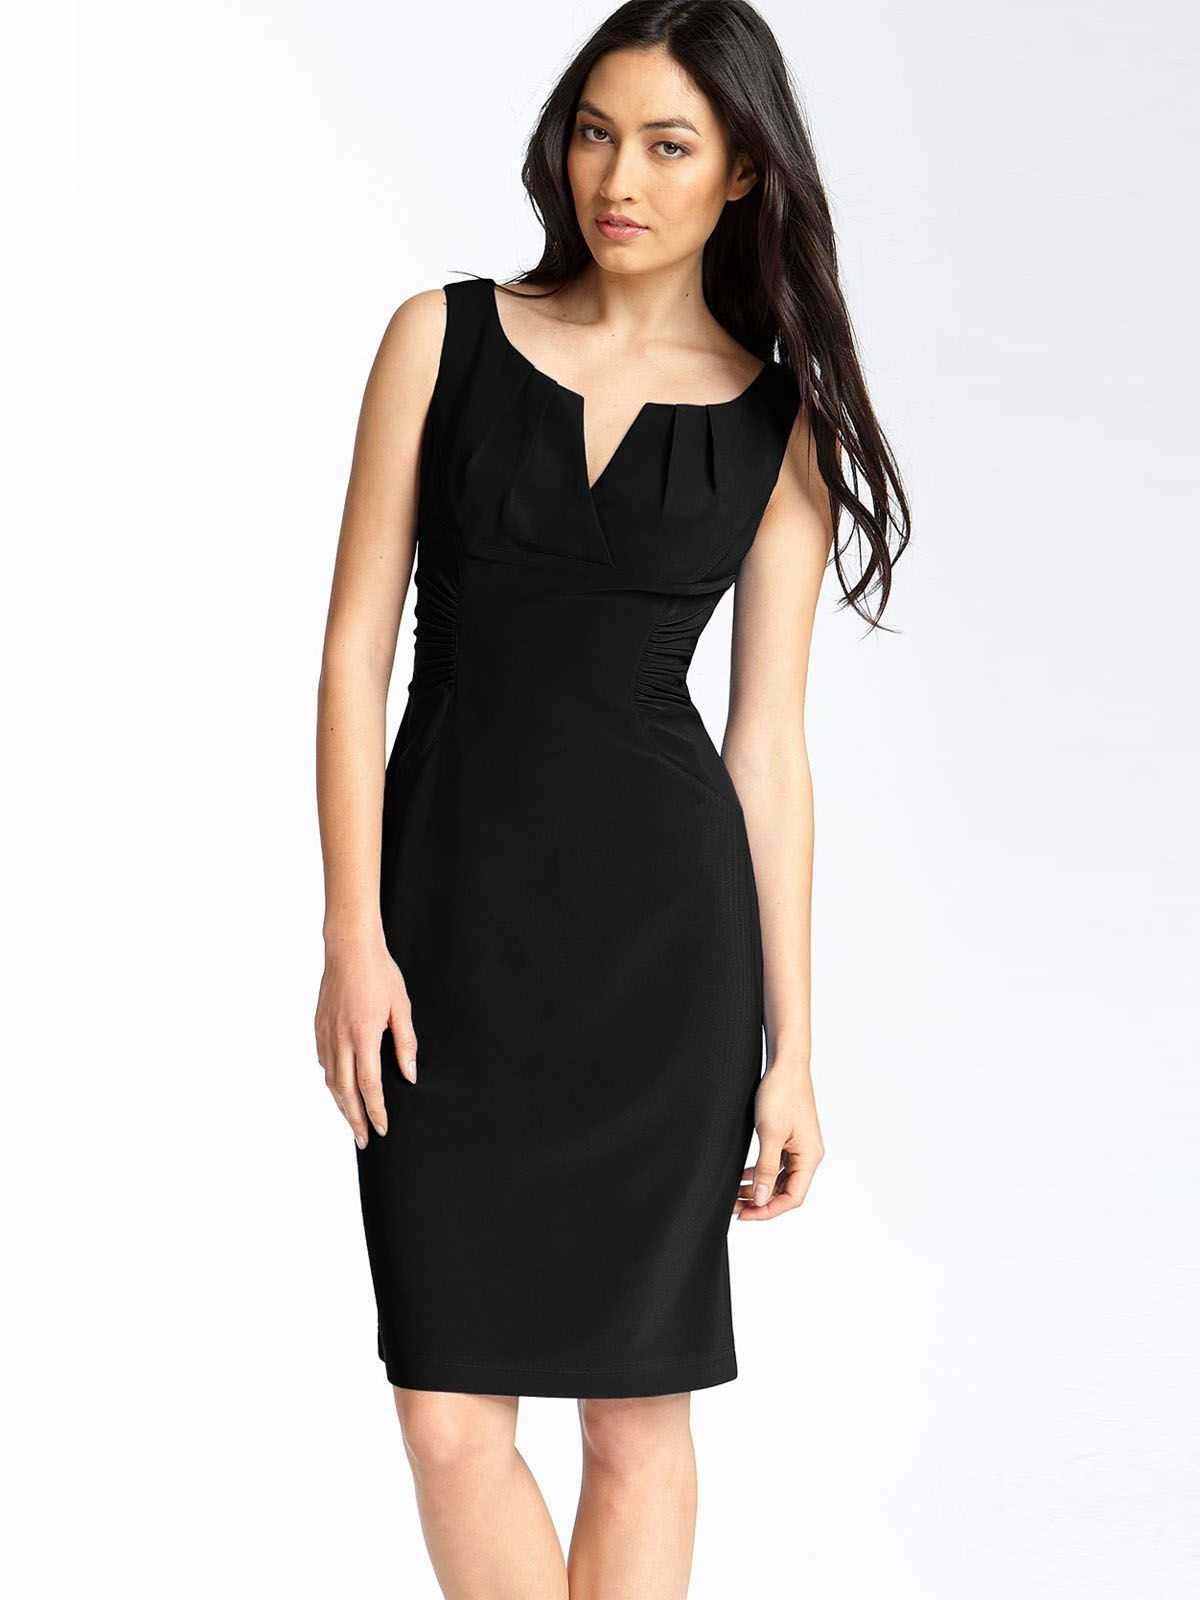 Best Little Black Dress For Your Shape | Little black dresses ...